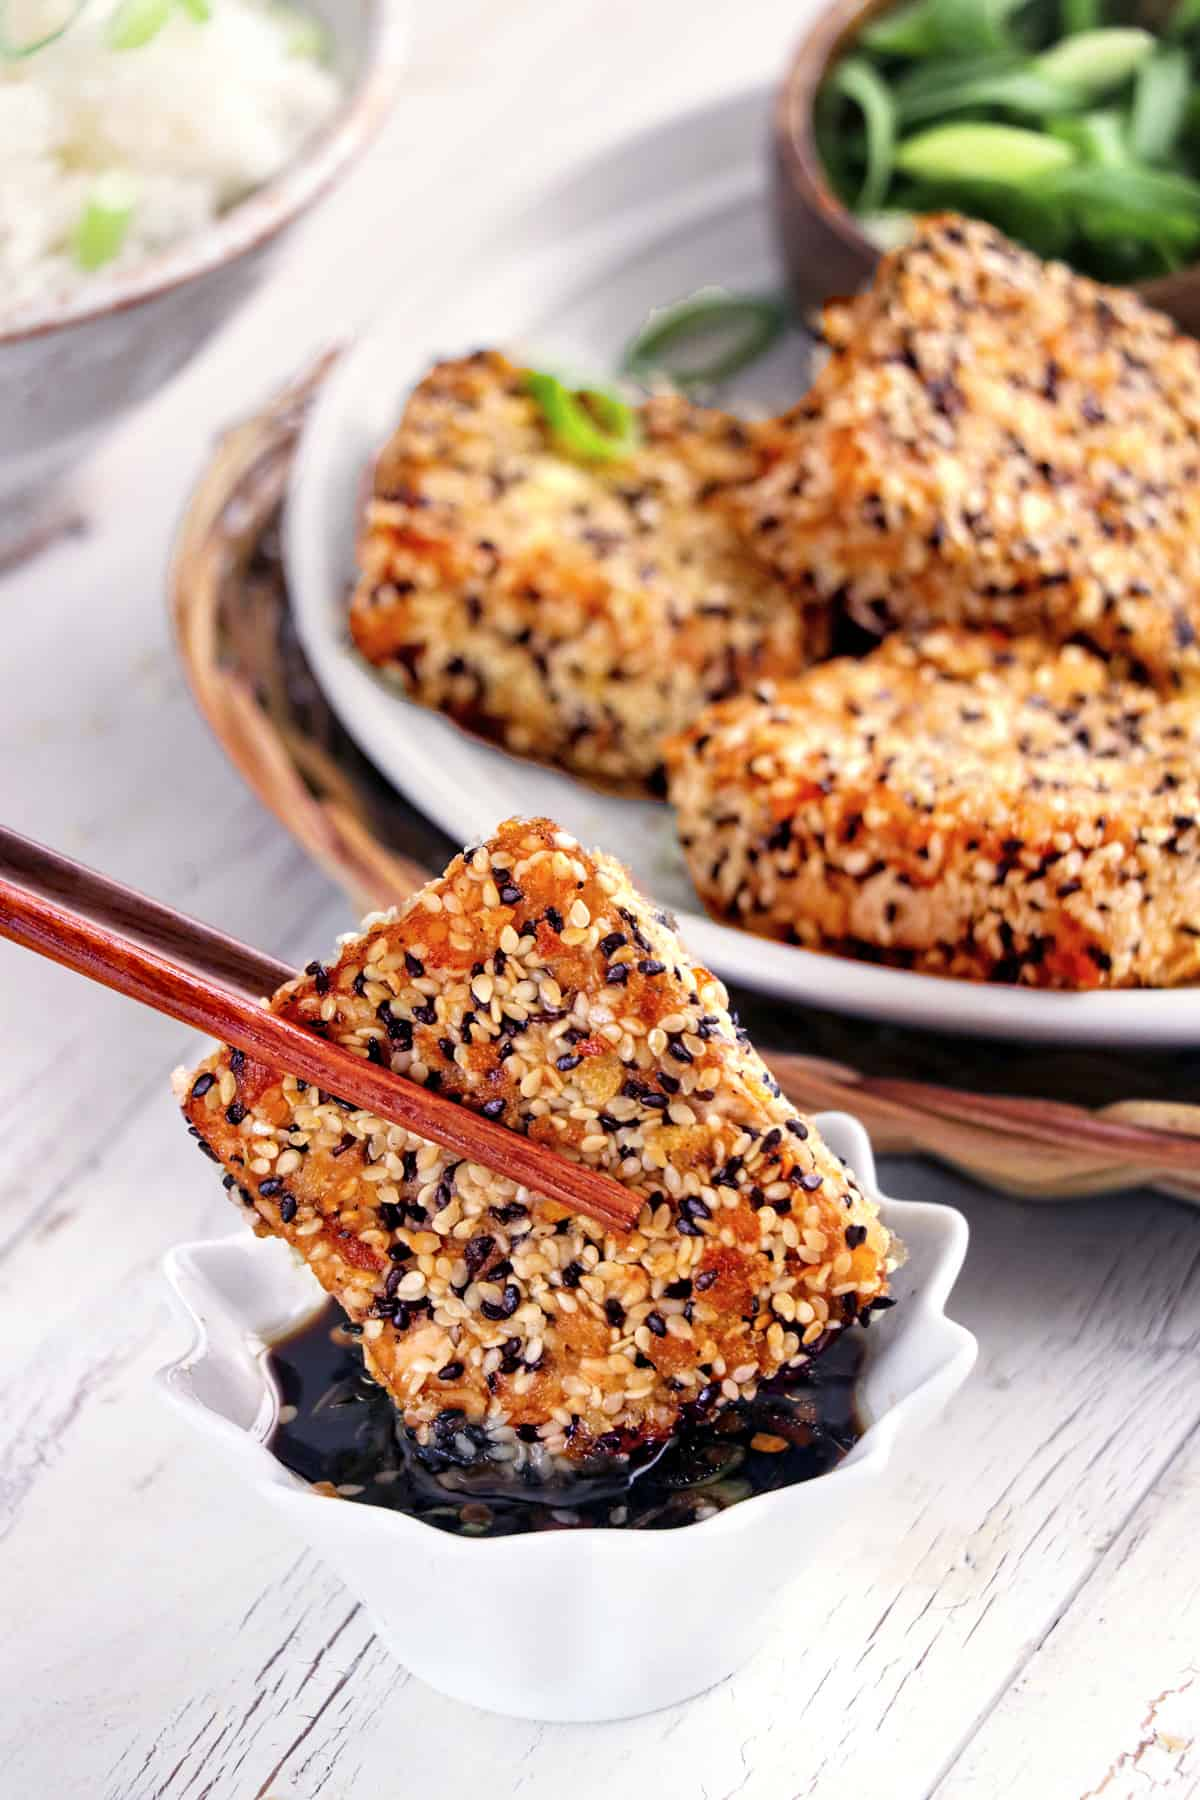 A piece of sesame crusted tofu being dipped into sauce with chopsticks.